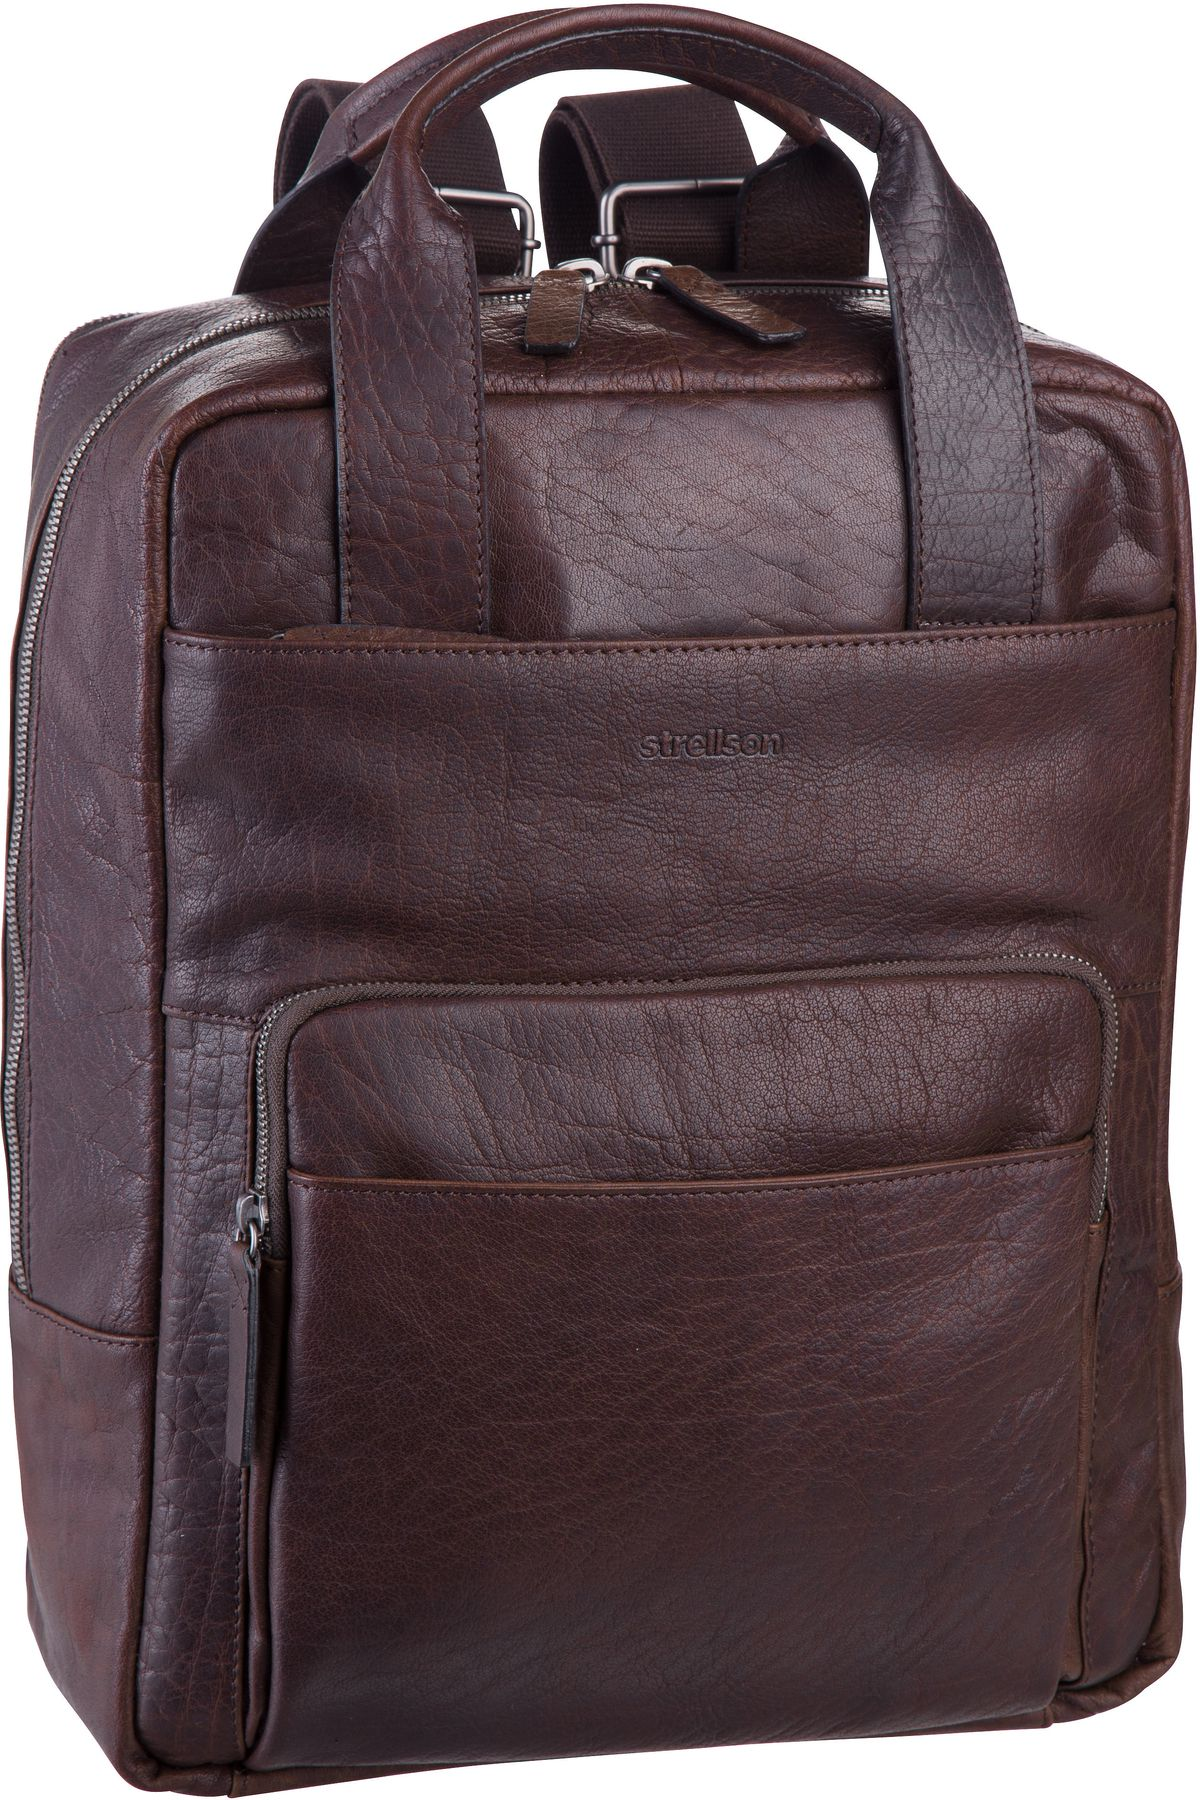 Rucksack / Daypack Coleman 2.0 BackPack LVZ Dark Brown